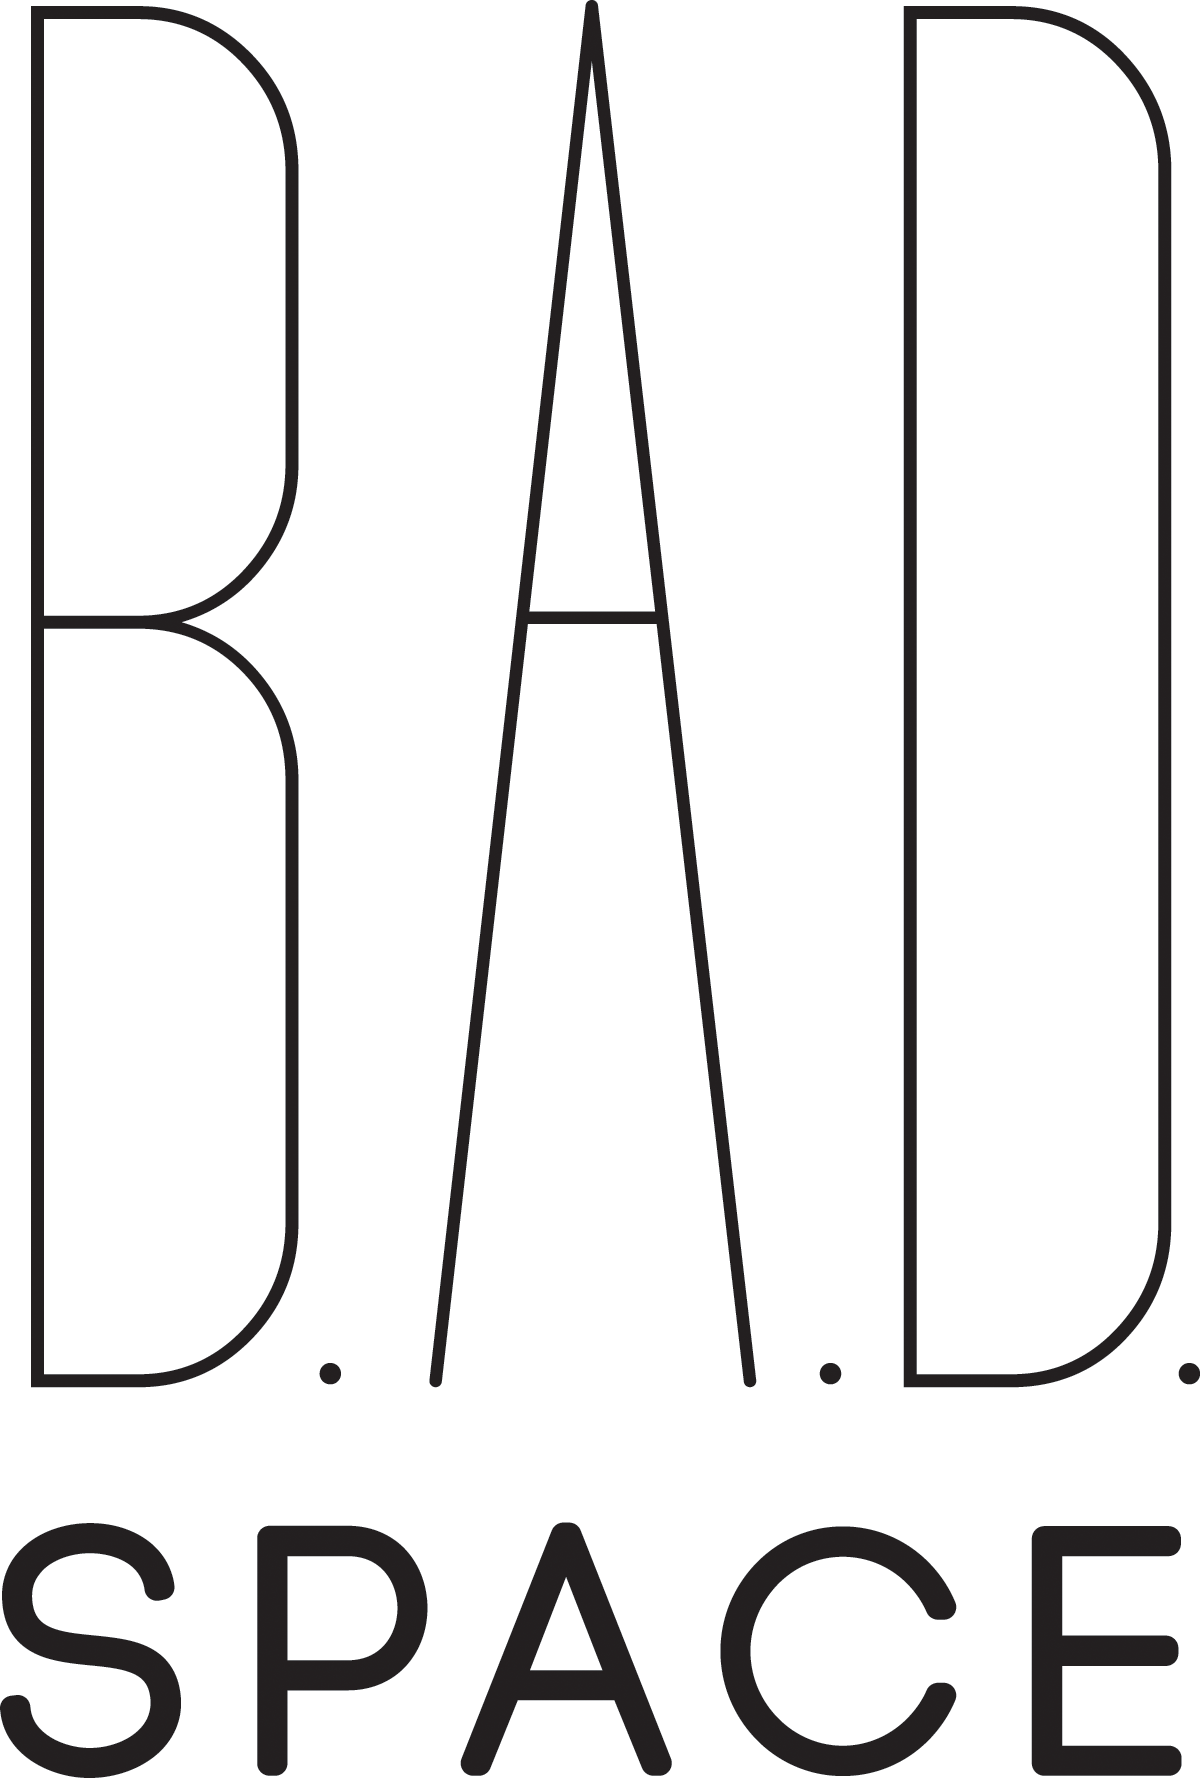 B.A.D. Space Gallery